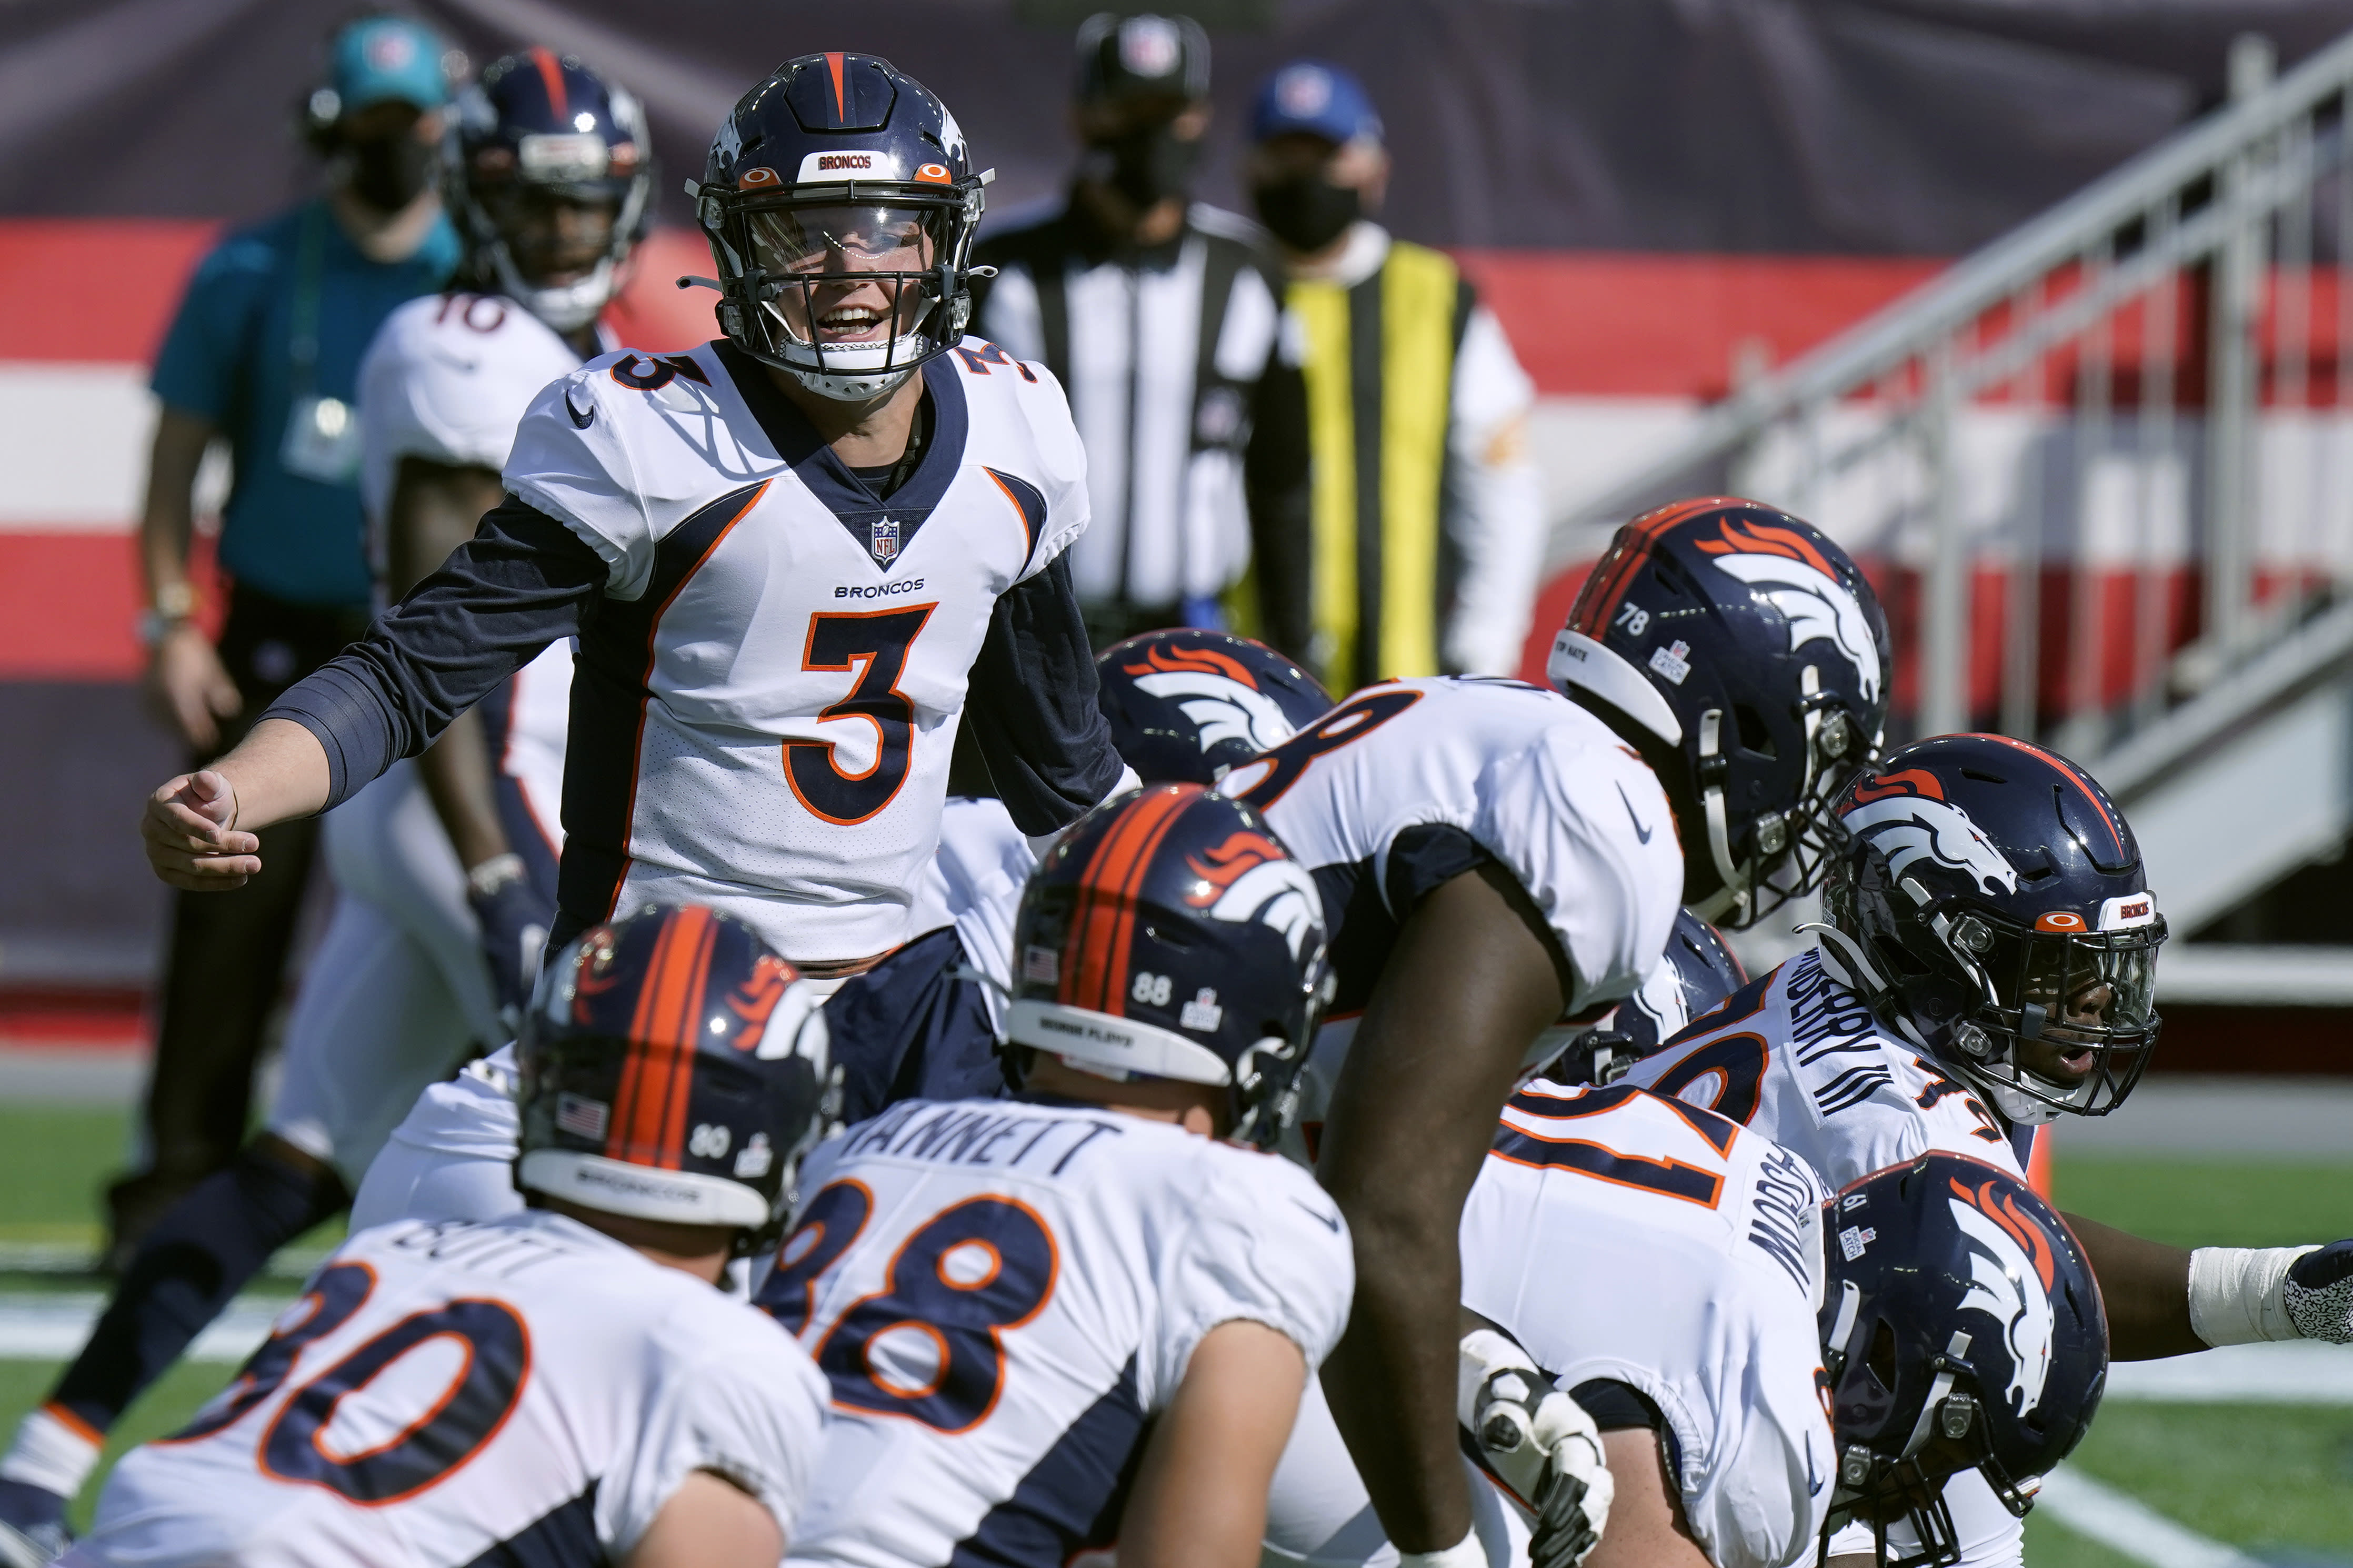 Denver Broncos quarterback Drew Lock (3) calls signals at the line of scrimmage in the first half of an NFL football game against the New England Patriots, Sunday, Oct. 18, 2020, in Foxborough, Mass. (AP Photo/Steven Senne)